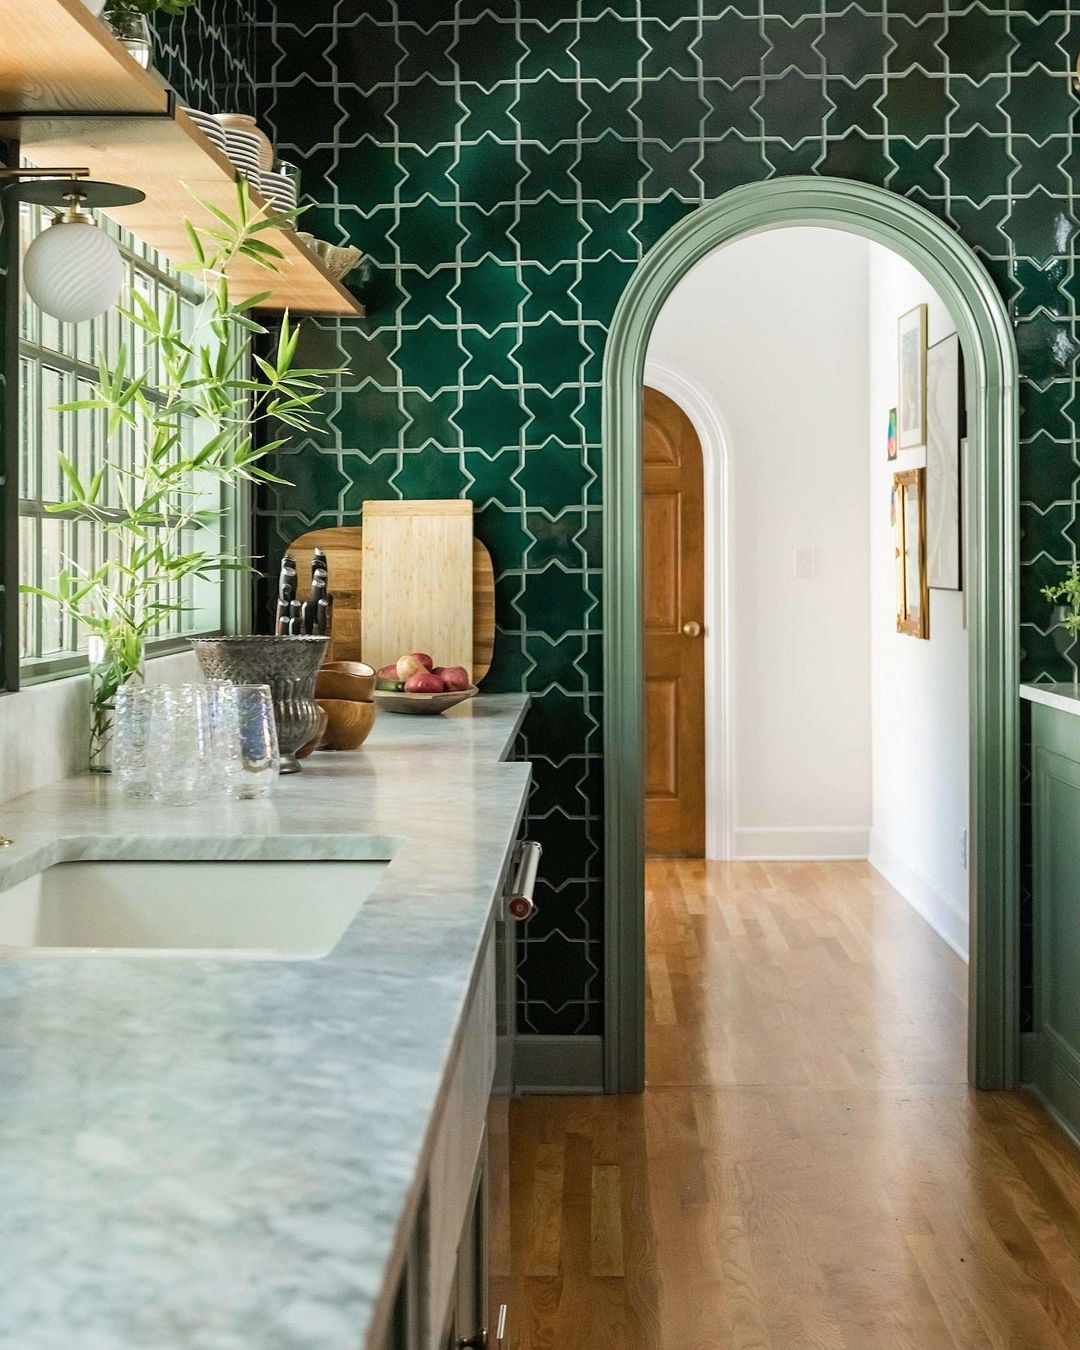 this is a kitchen with green tiles by Rebecca Gibbs